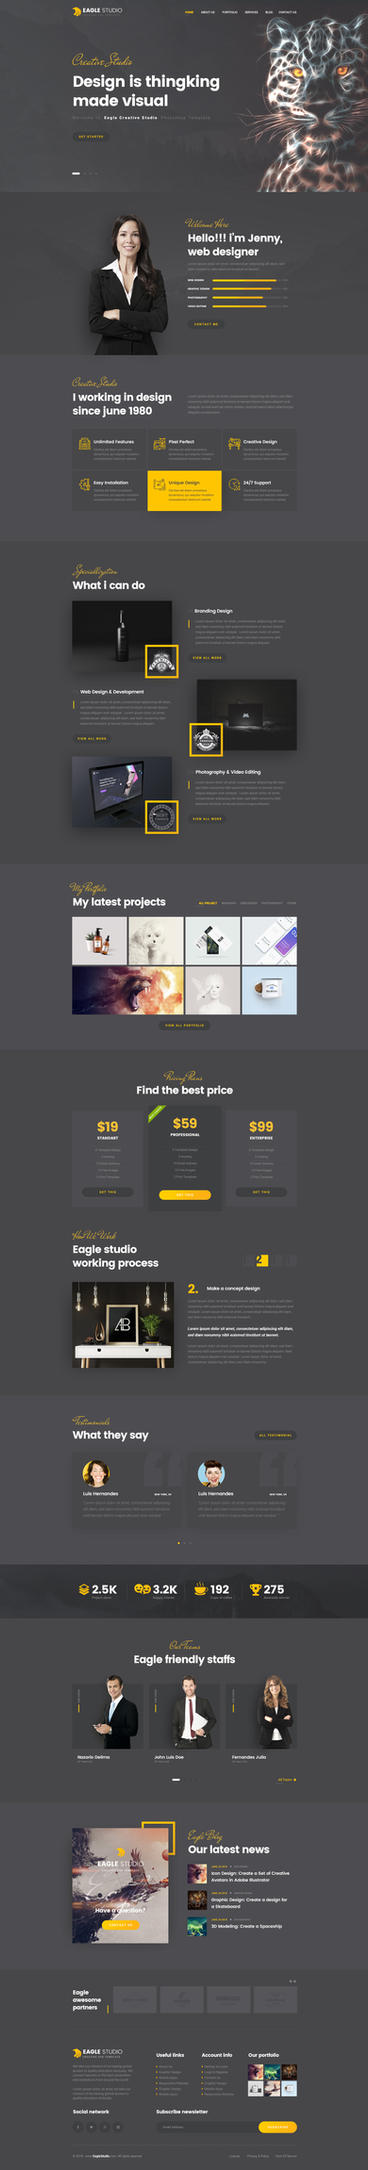 Eagle Studio - Creative PSD Template Dark Version by youwes